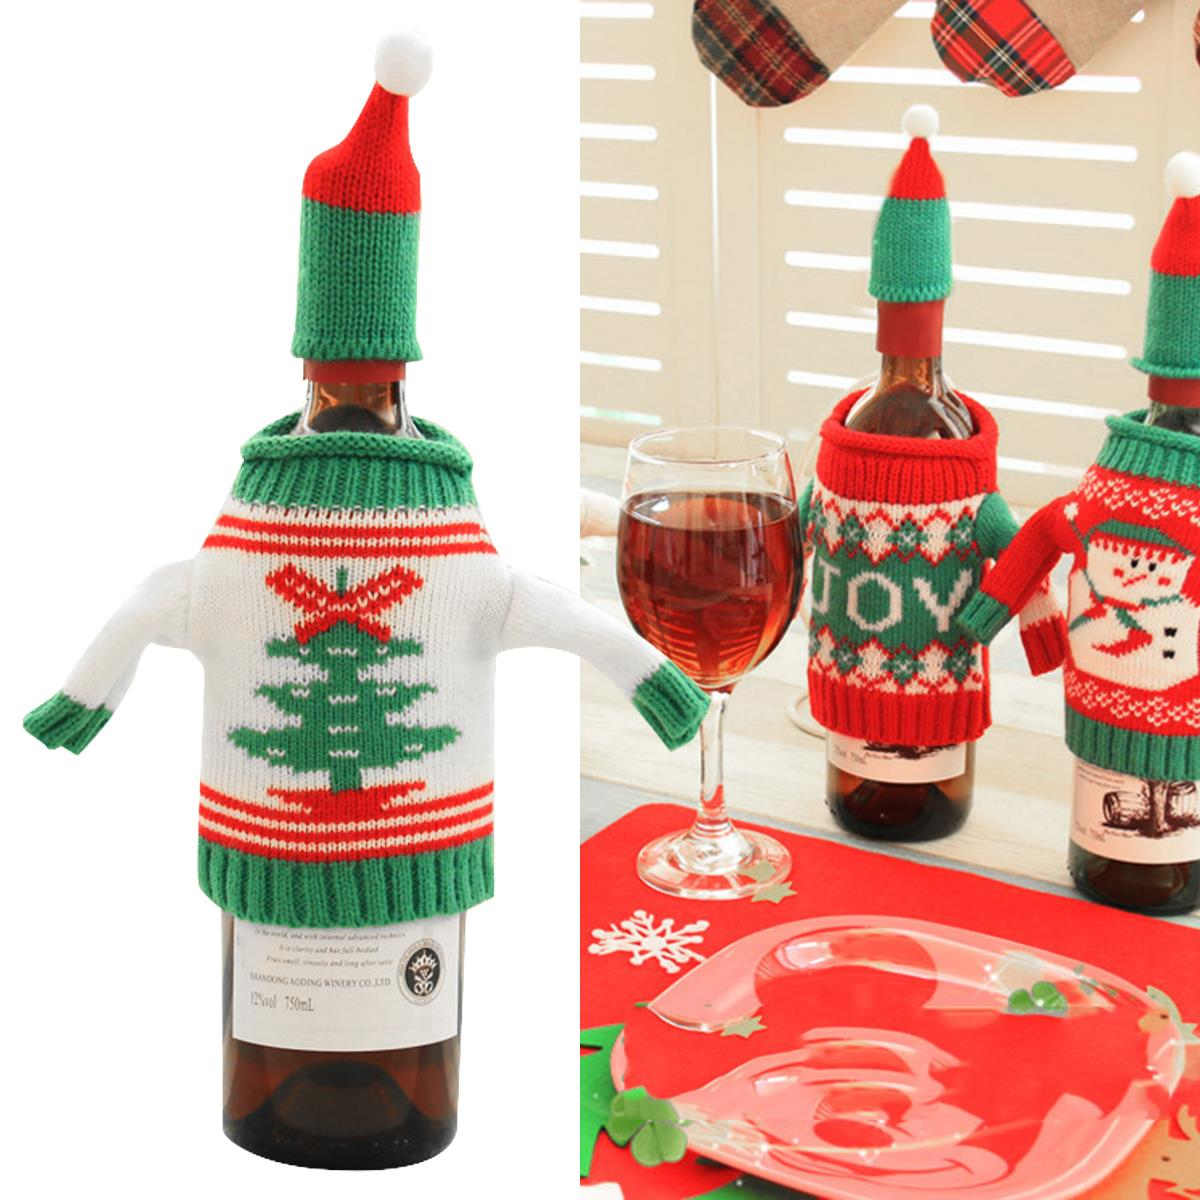 Hot 1pcs Fashionclubs Christmas Wine Bottle Knitted Ugly Sweater Covers Set in Pendant Drop Ornaments from Home Garden